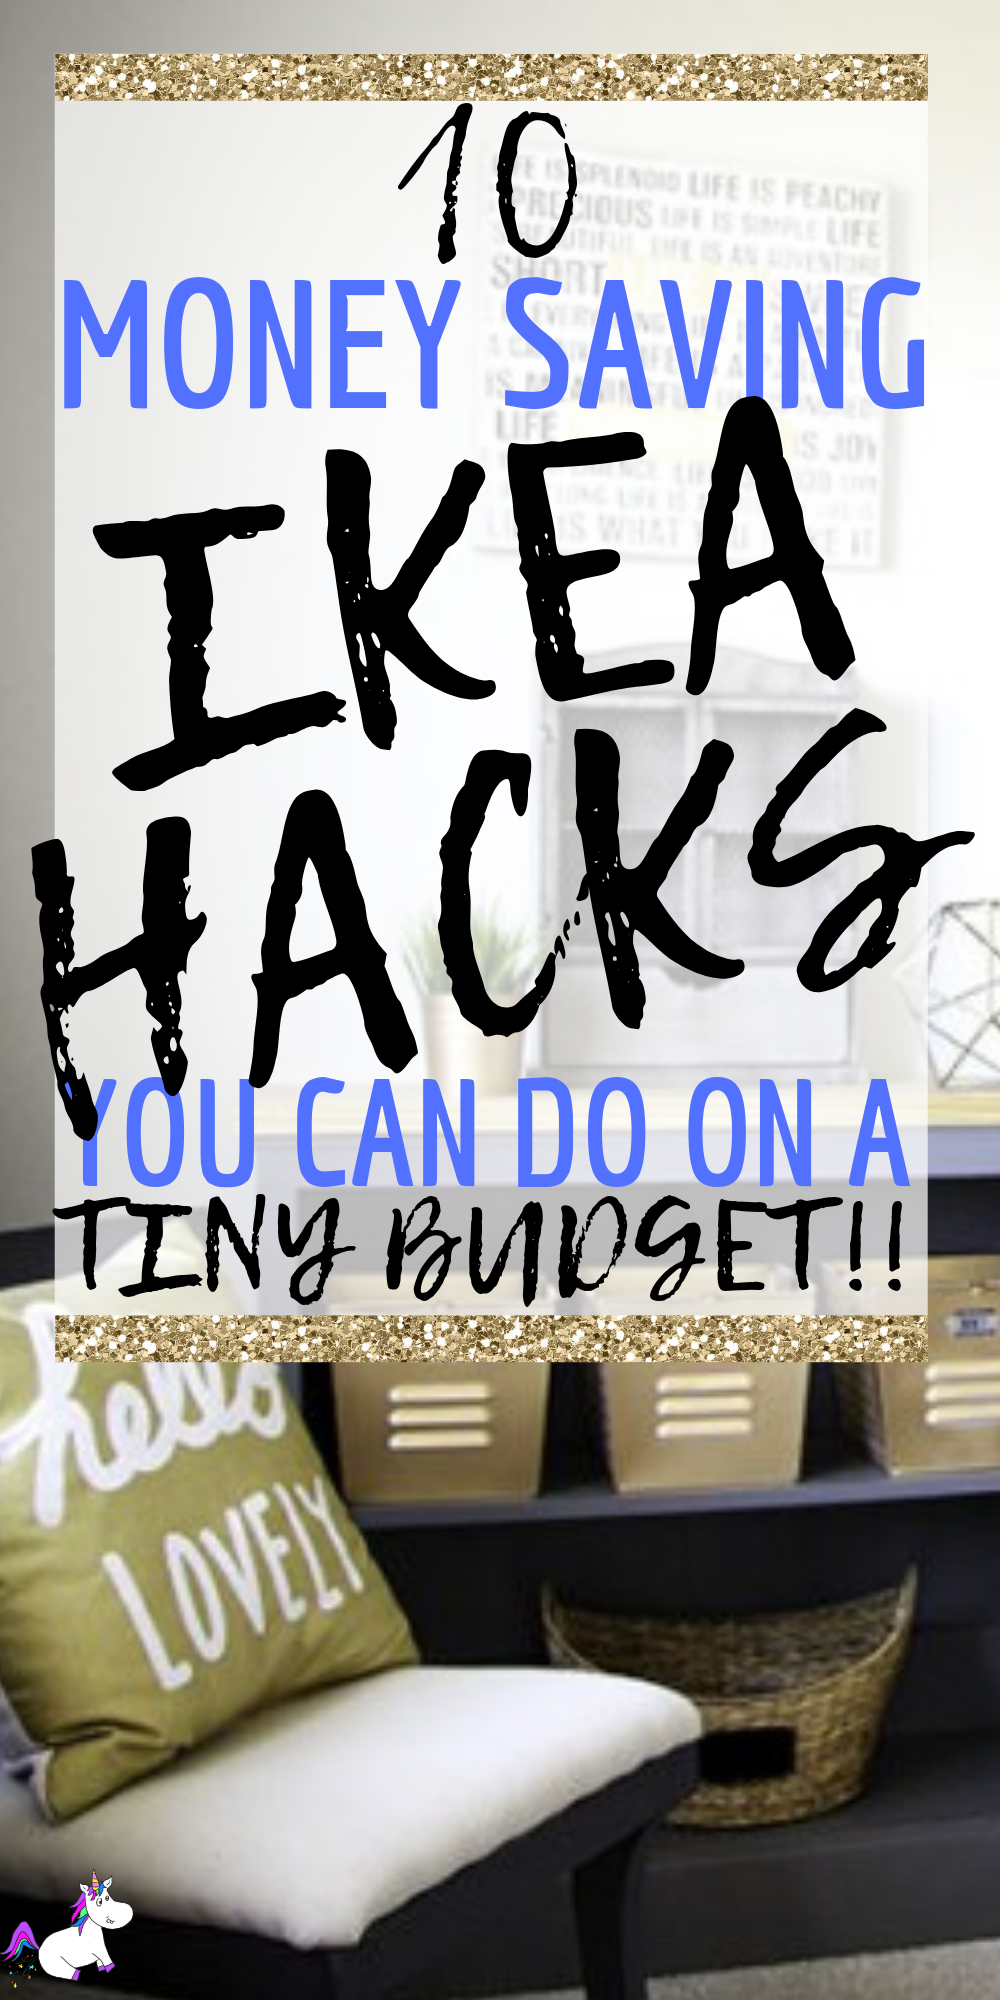 10 Money Saving Ikea Hack Tutorials You Can Do On A Tiny Budget! DIY home decor | best ikea hacks | Creative Home decor | #creativehomedecor #ikeahacks #bestikeahacks